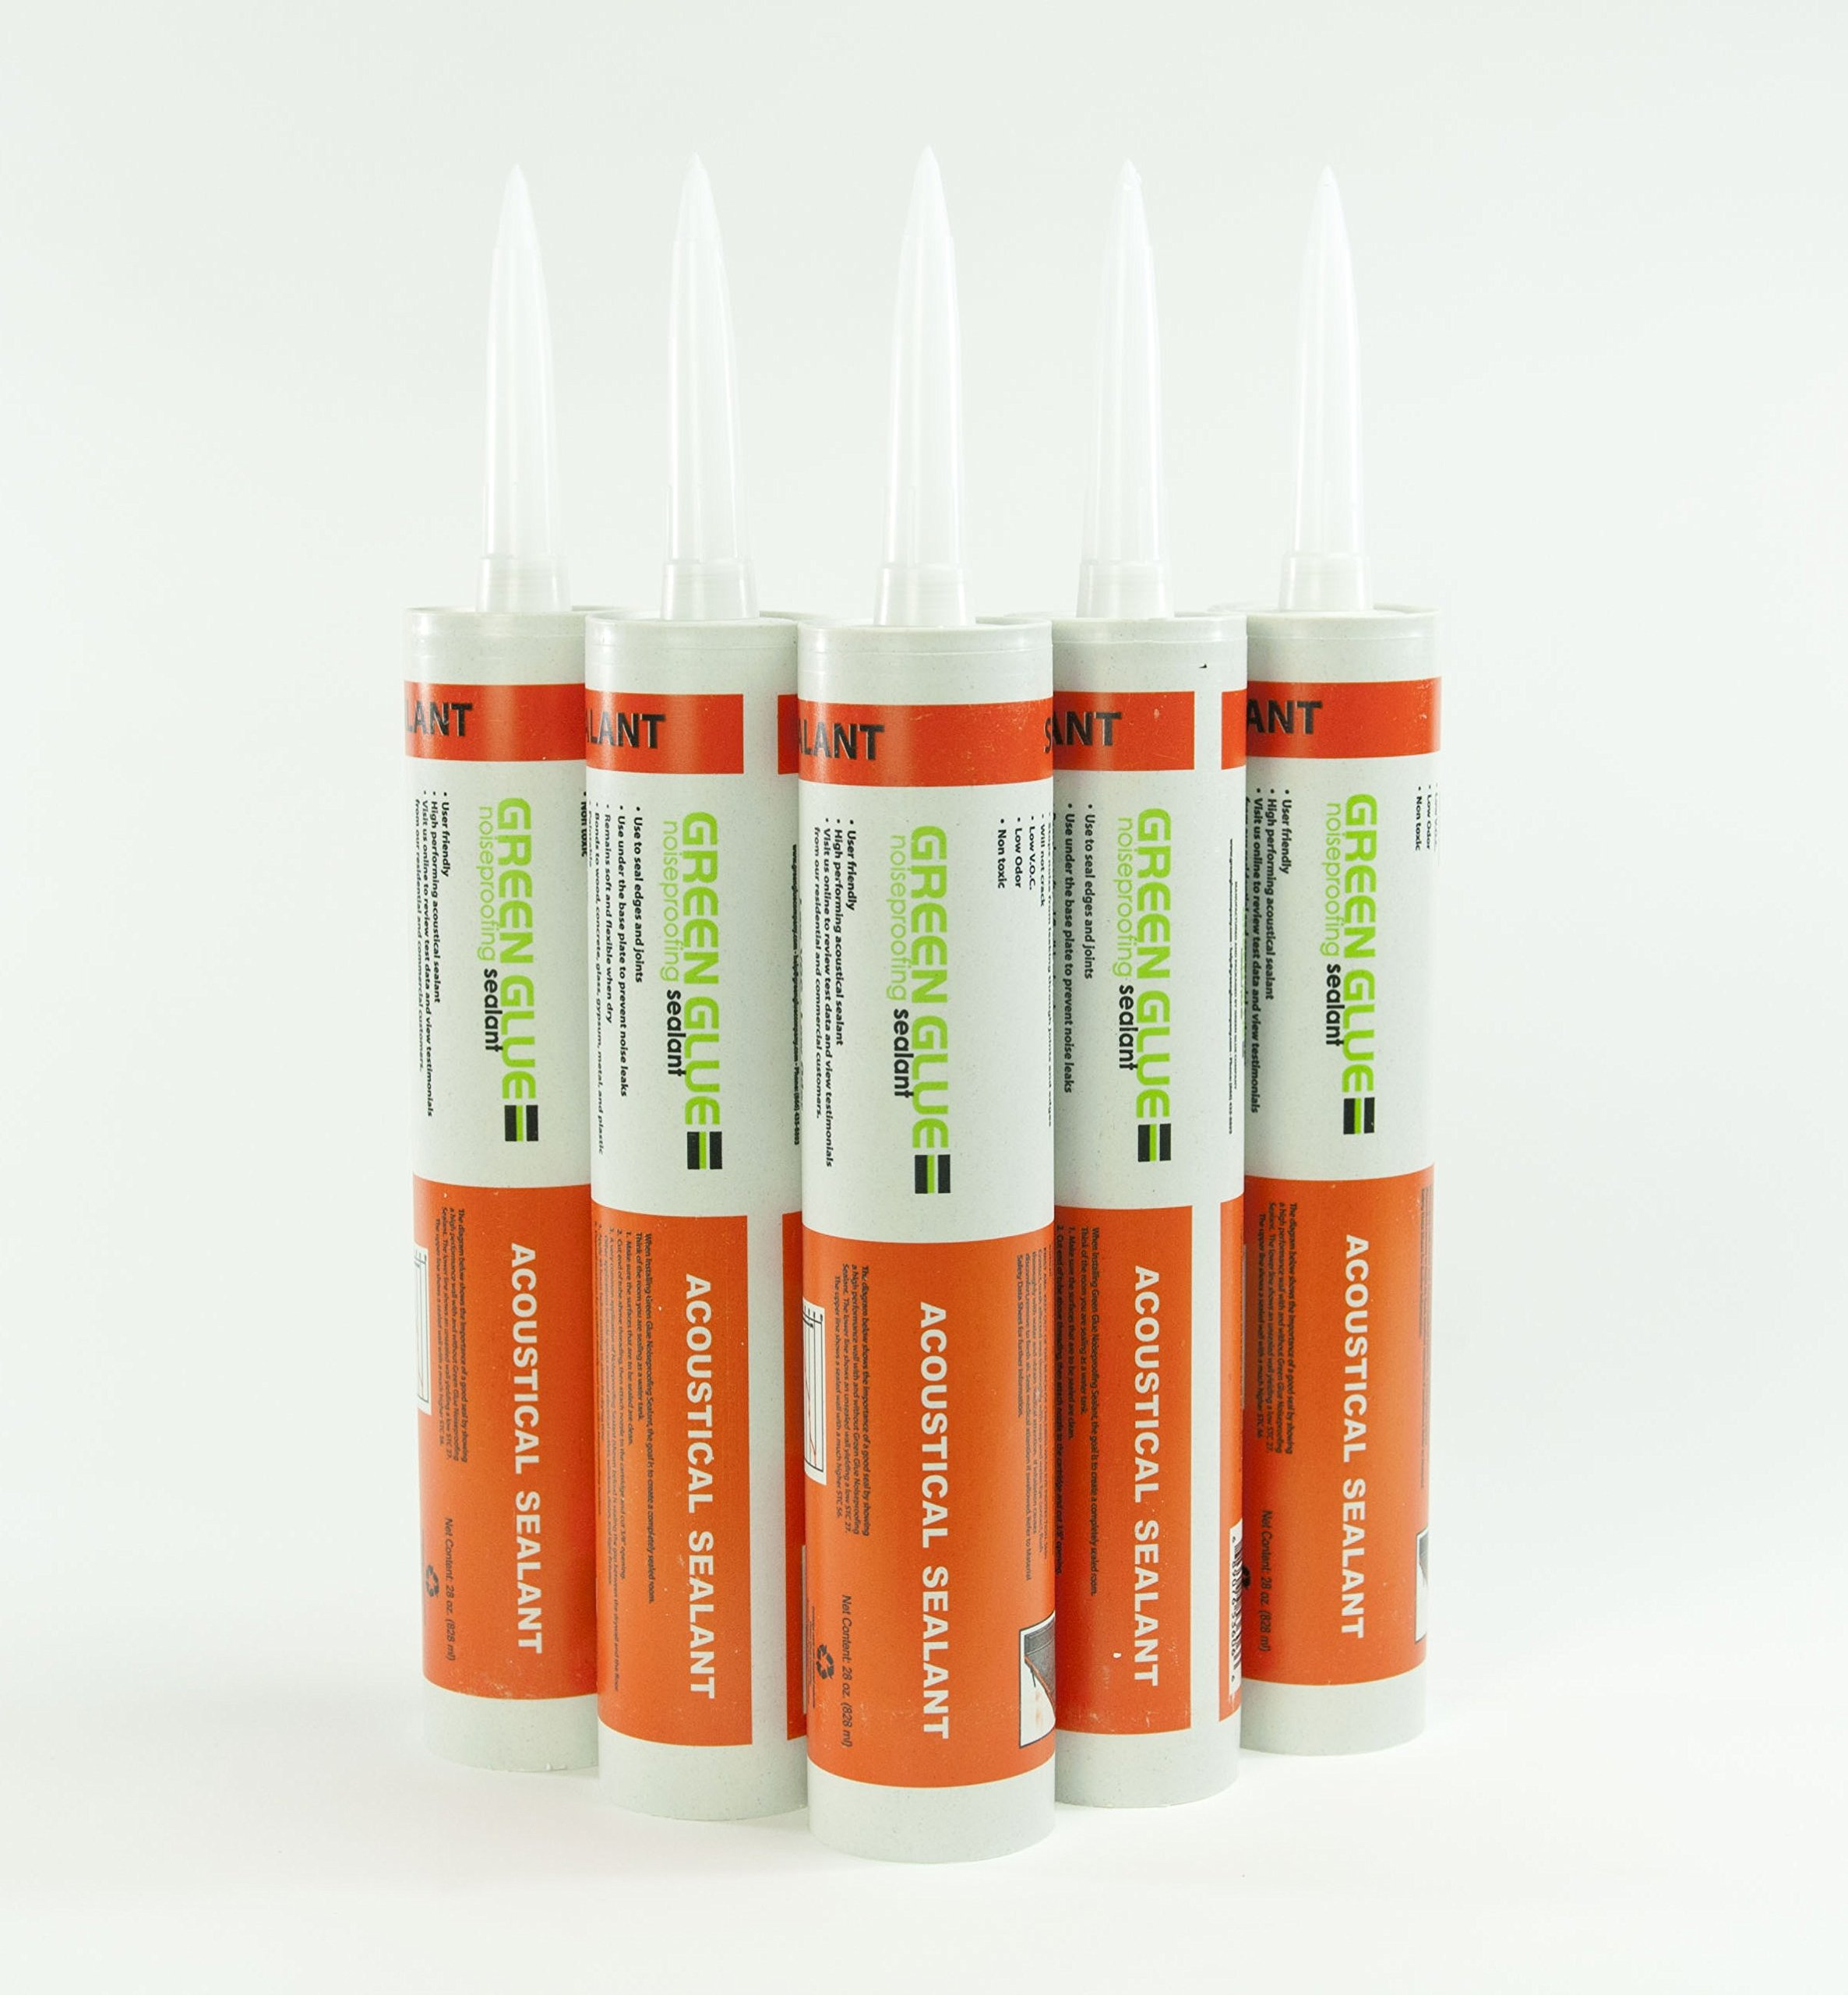 Green Glue Noiseproofing Sealant - 6 Tubes